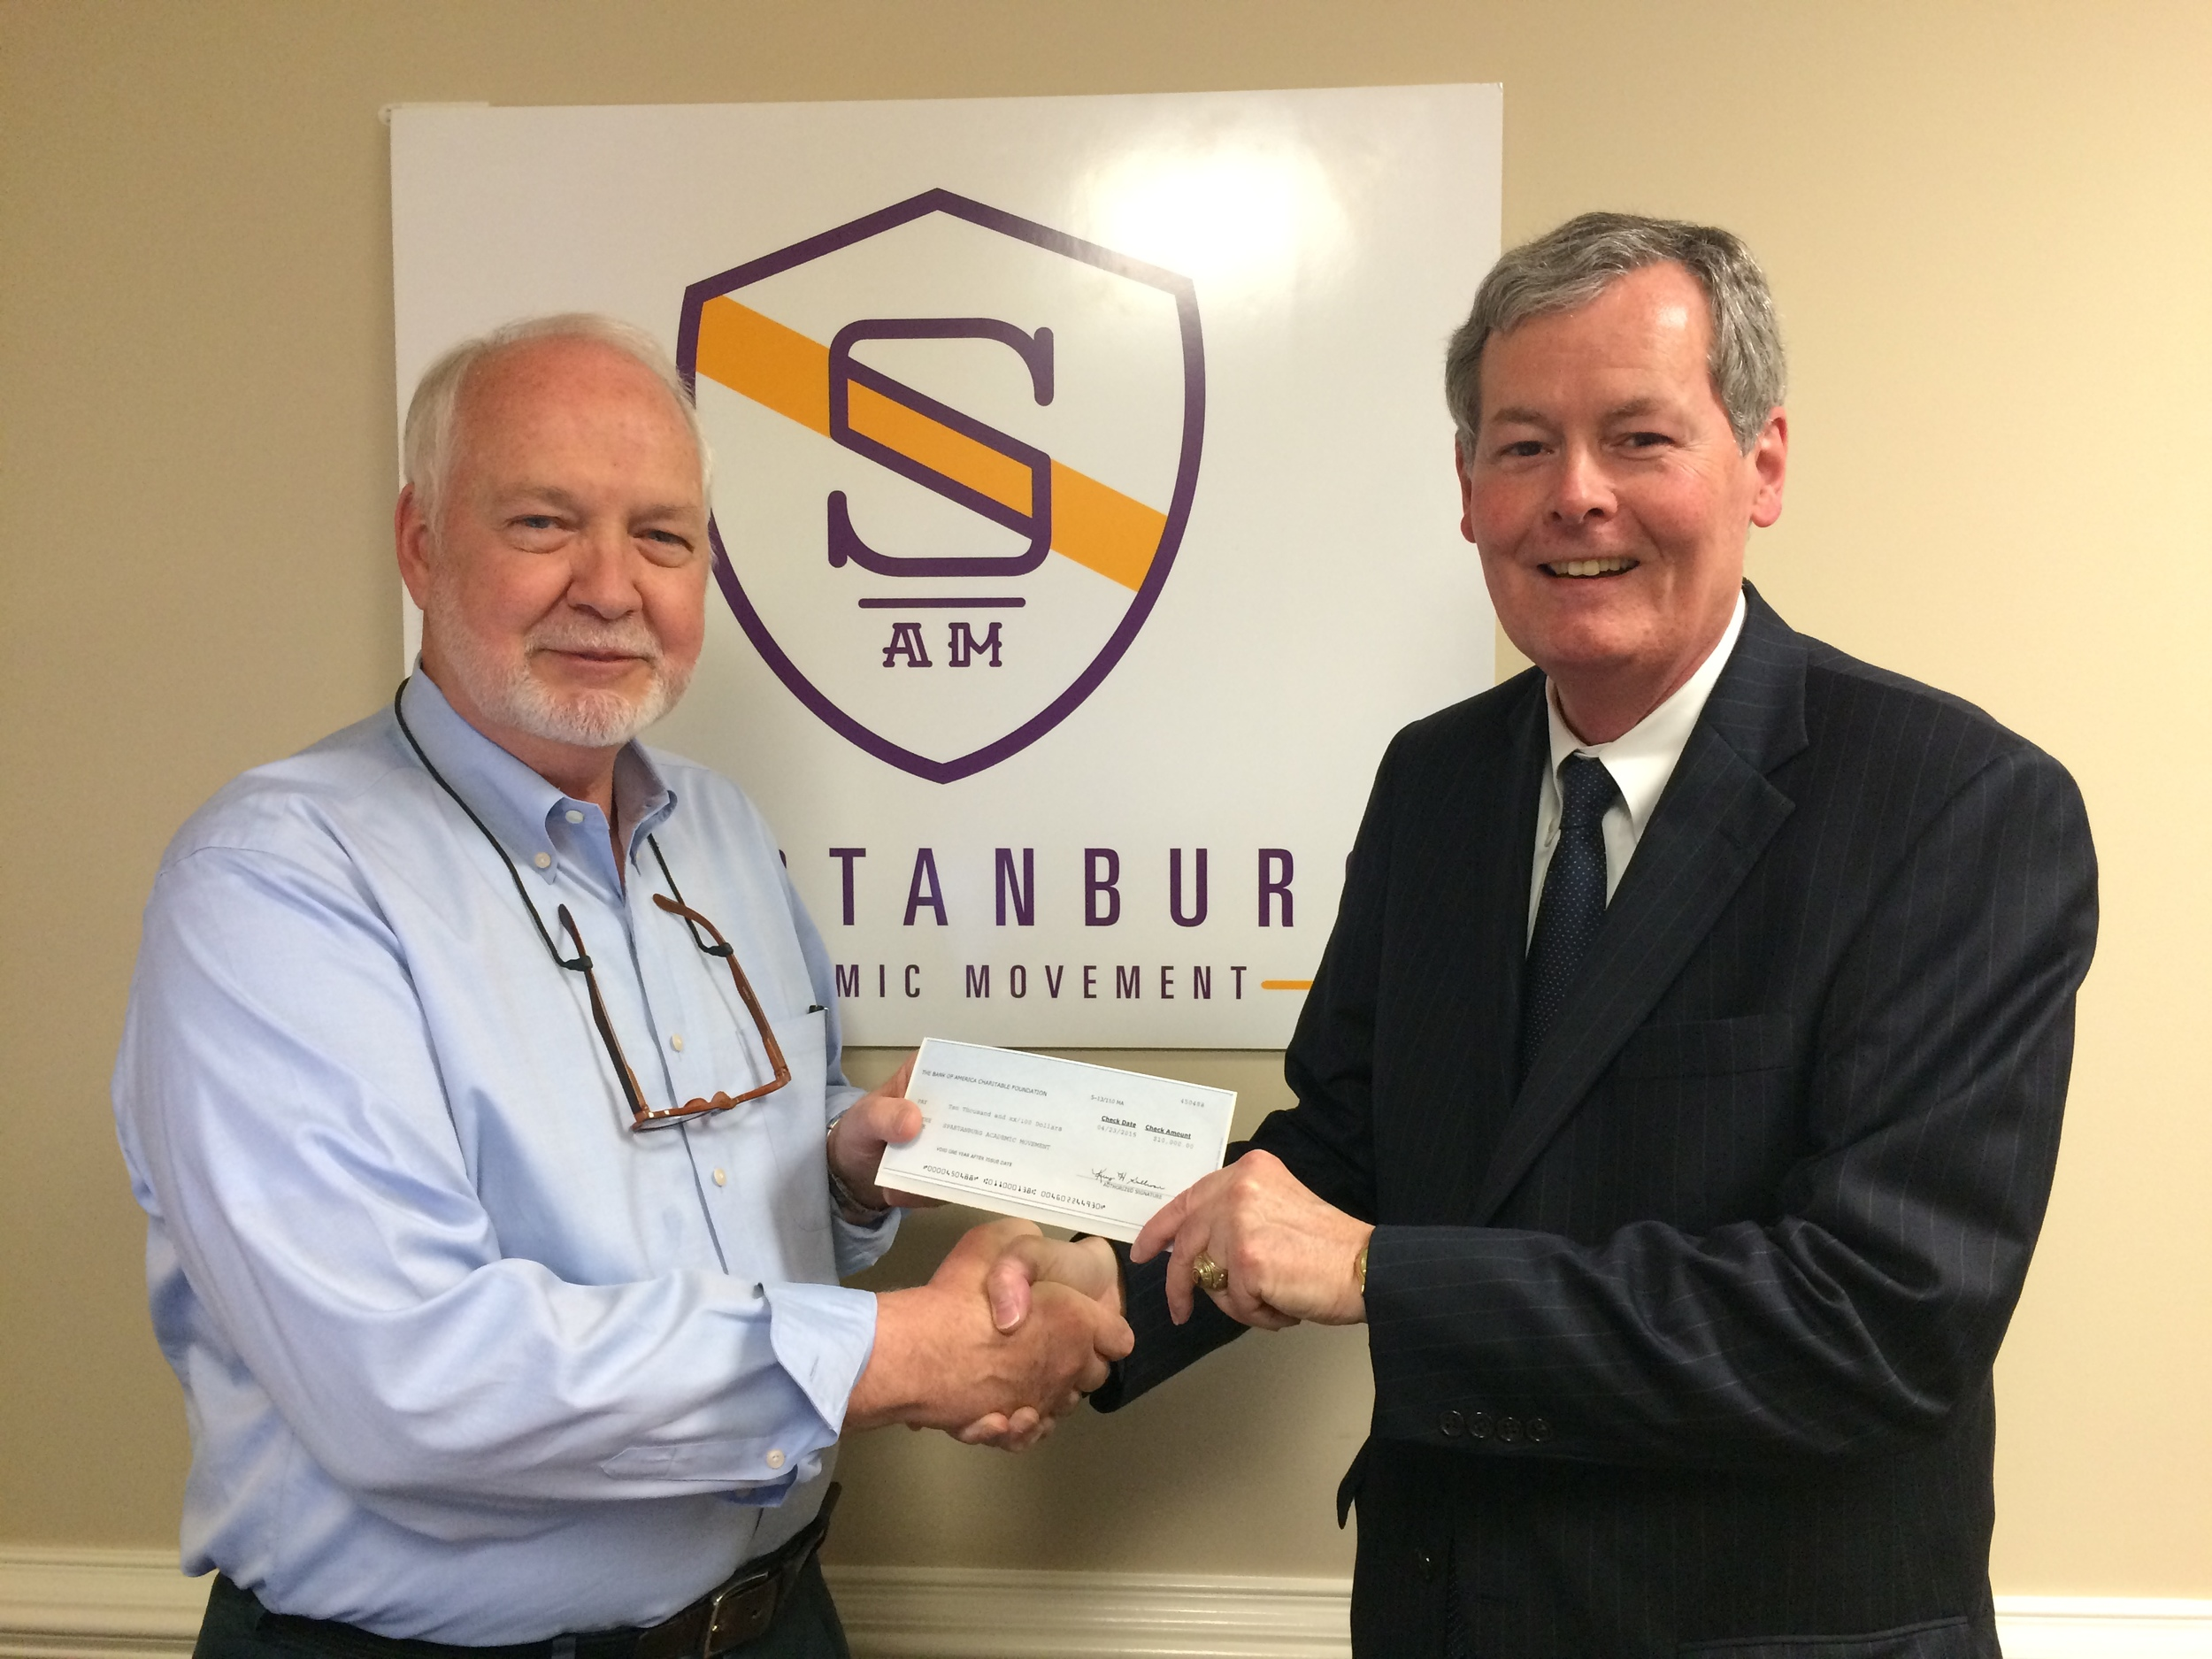 Spartanburg Market President Scott Mitchell of Bank of America (right) presented the $10,000 check to SAM's Executive Director (left) at the SAM office.